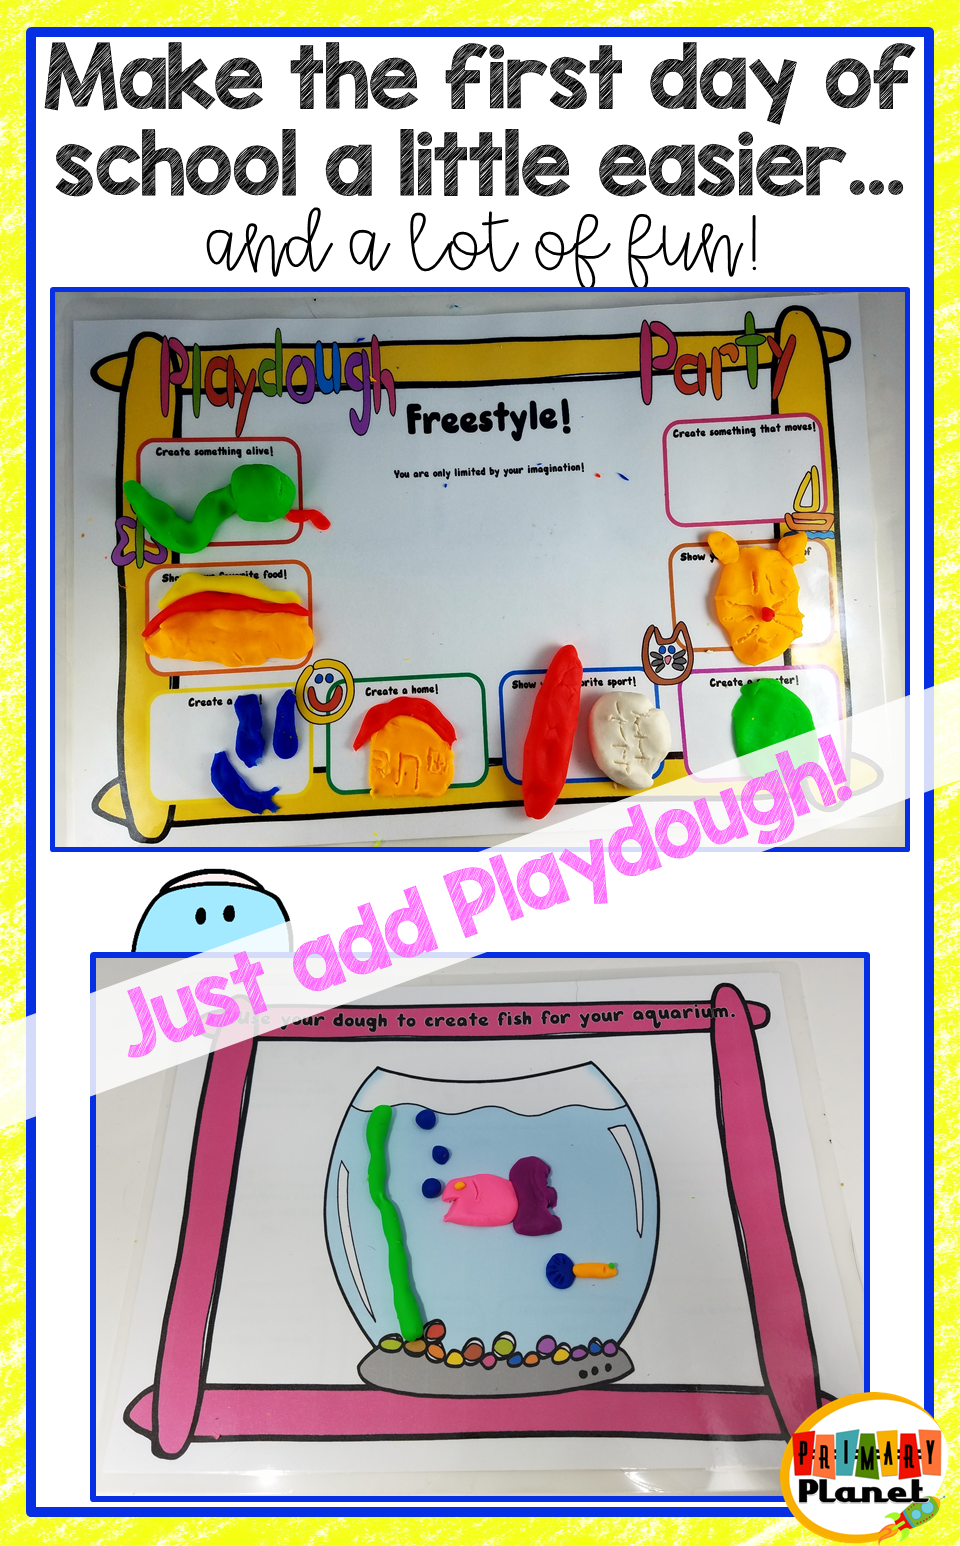 Fun, Easy, First Day of School Activity that your kiddos will love (and make your whole day a little easier!)